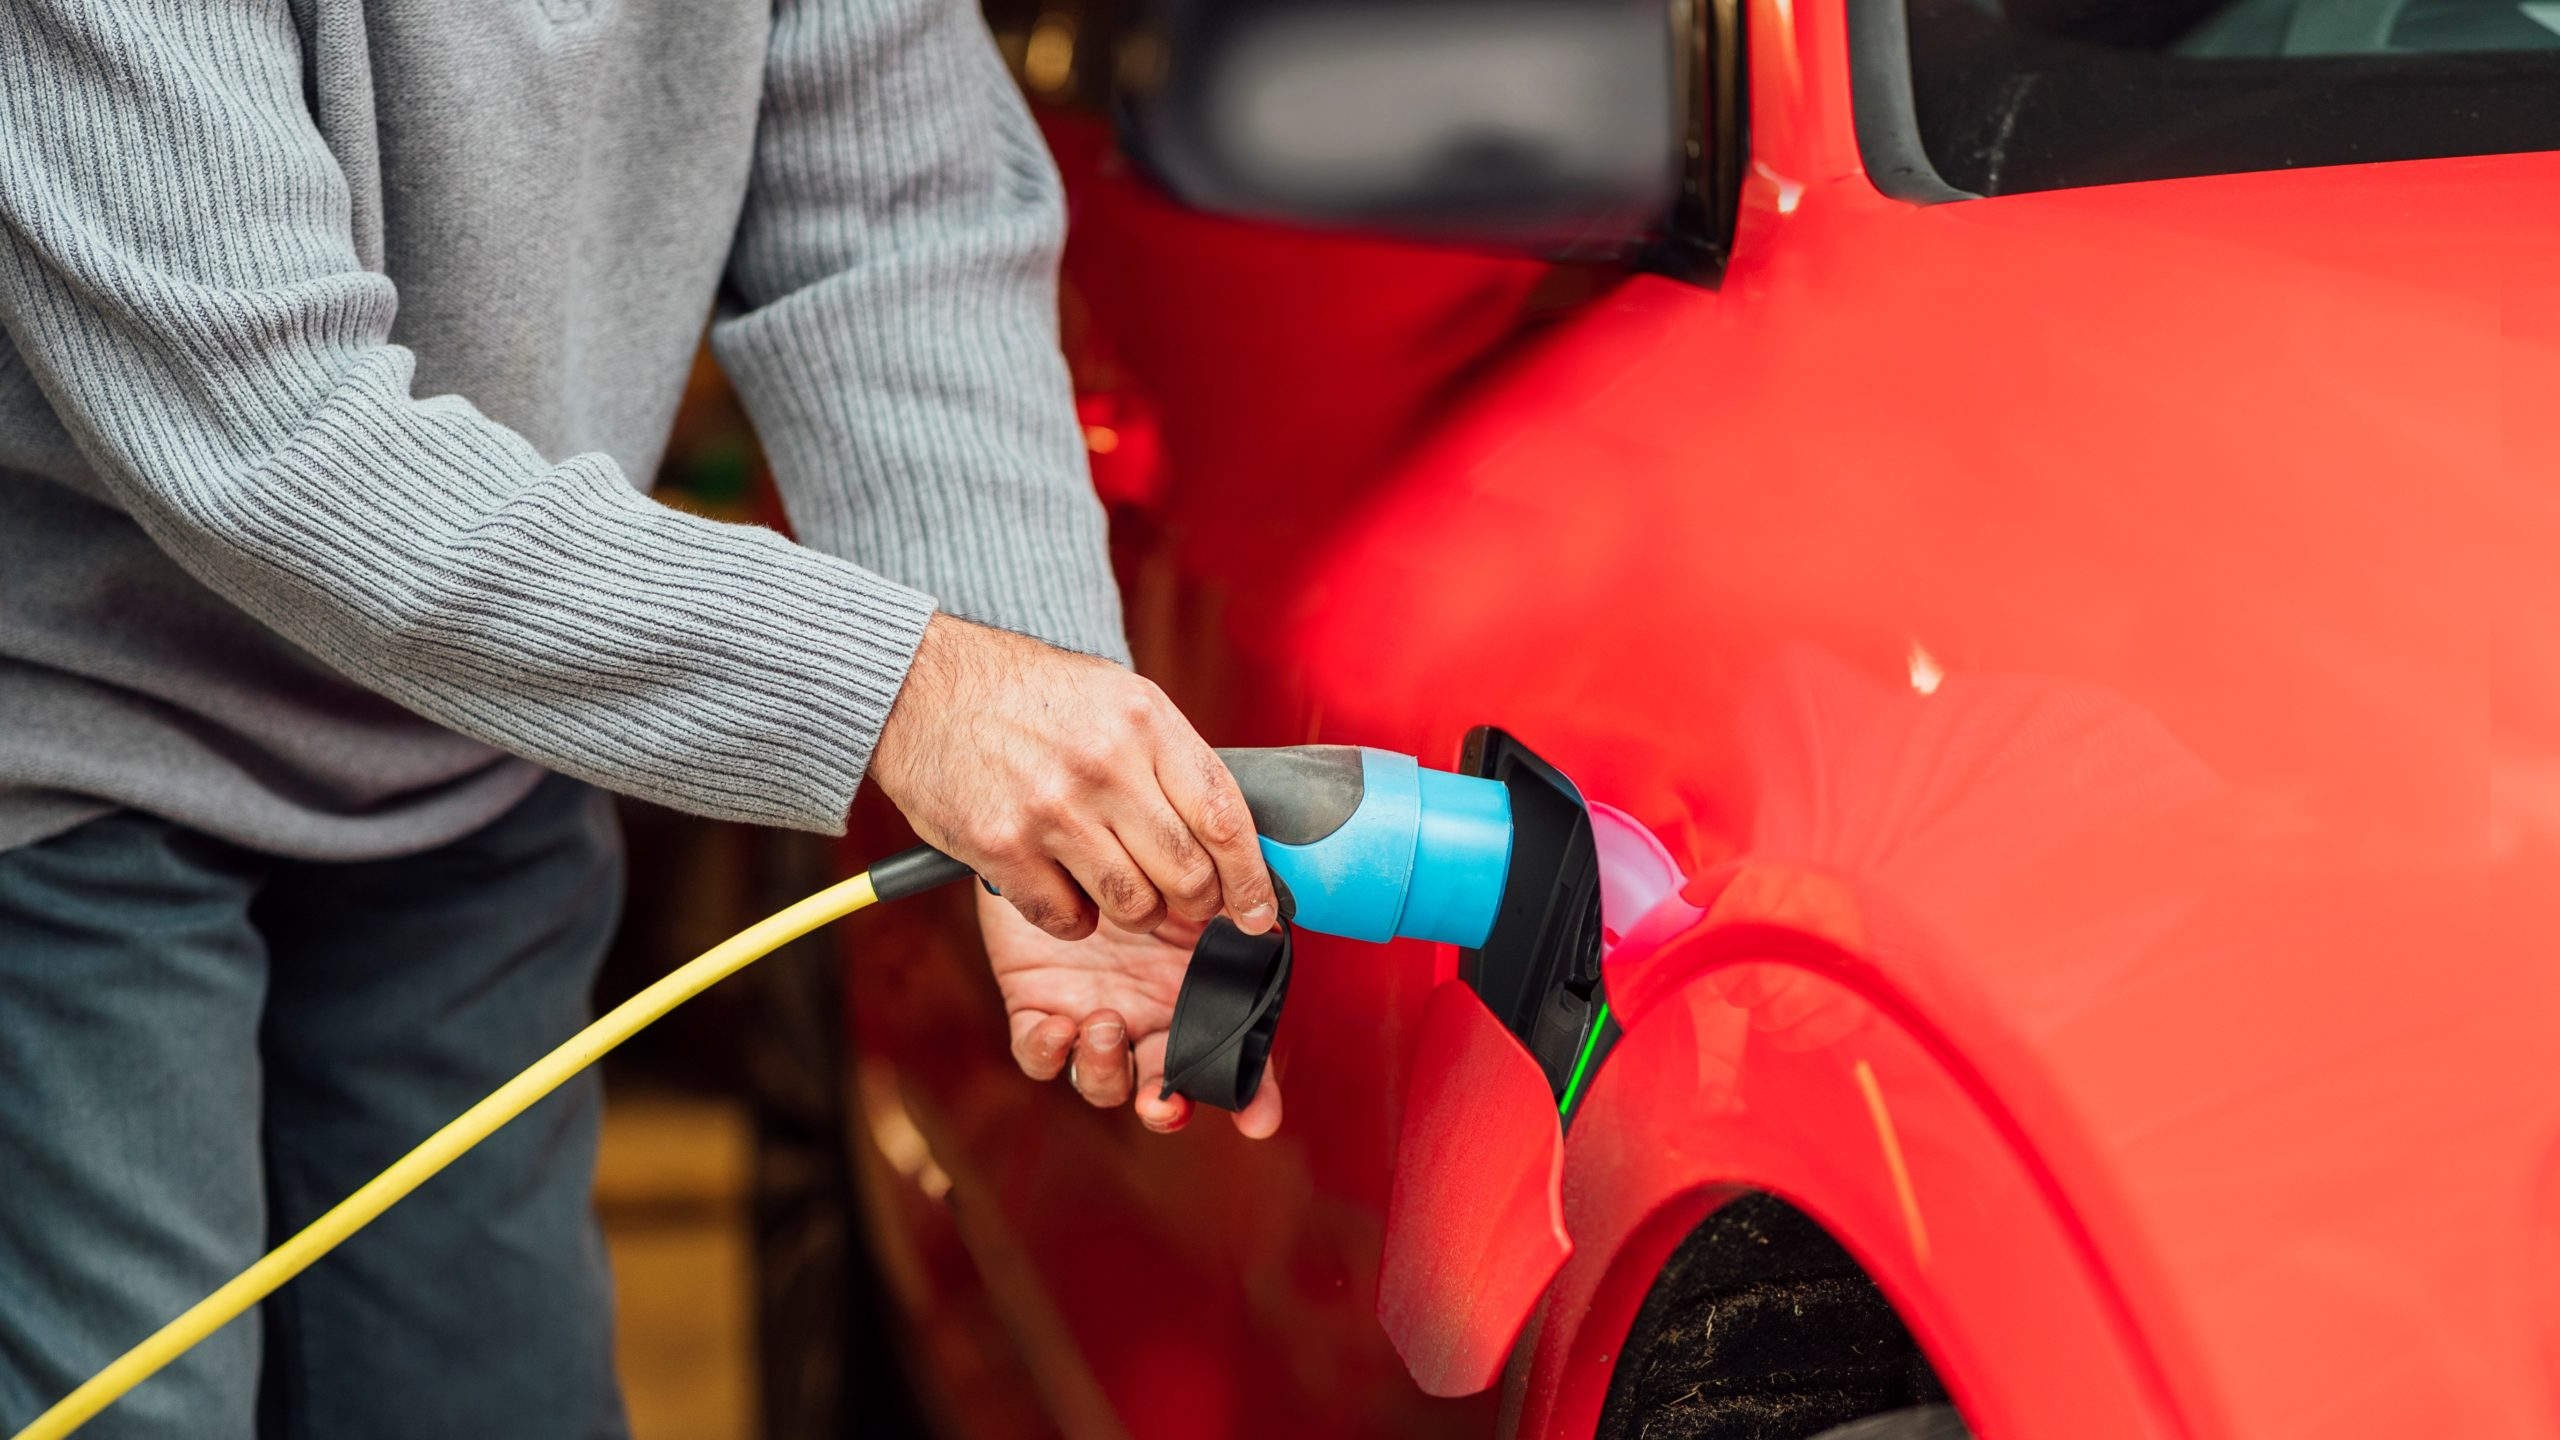 An unrecognizable person placing the charging port into the electric car they are an energy-conscious person using energy-efficient travel.